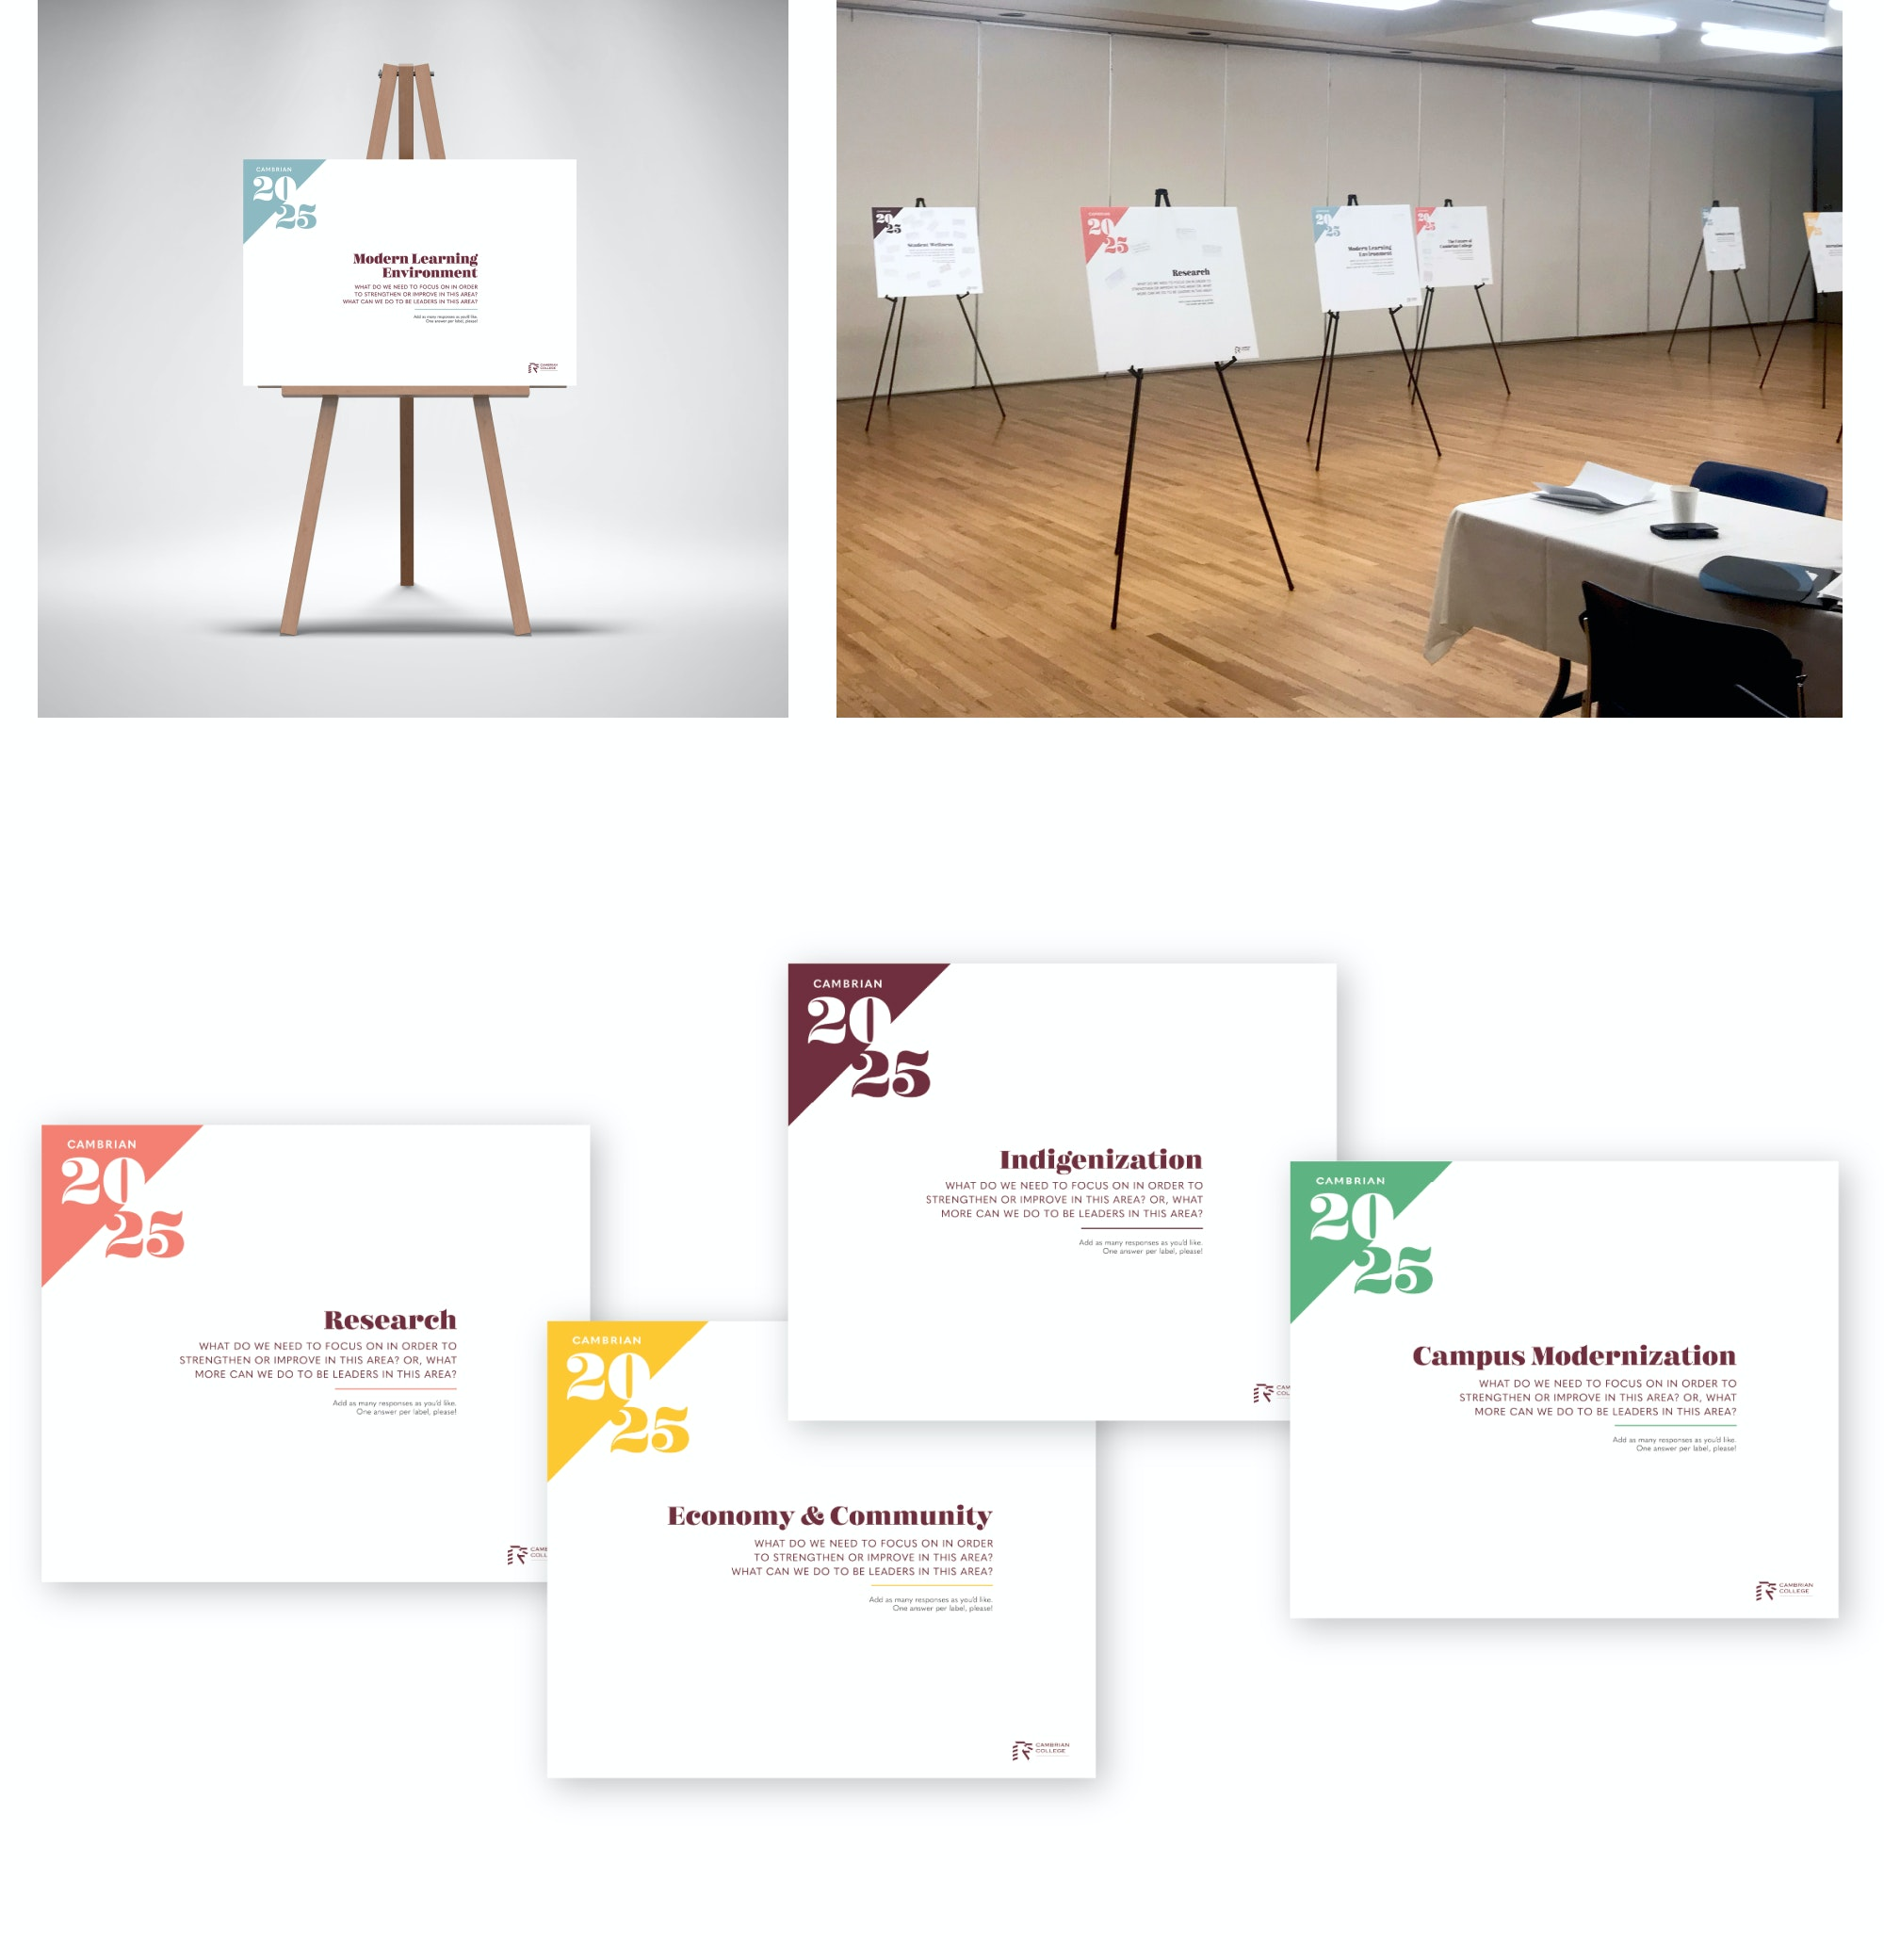 Cambrian strat plan engagement poster boards